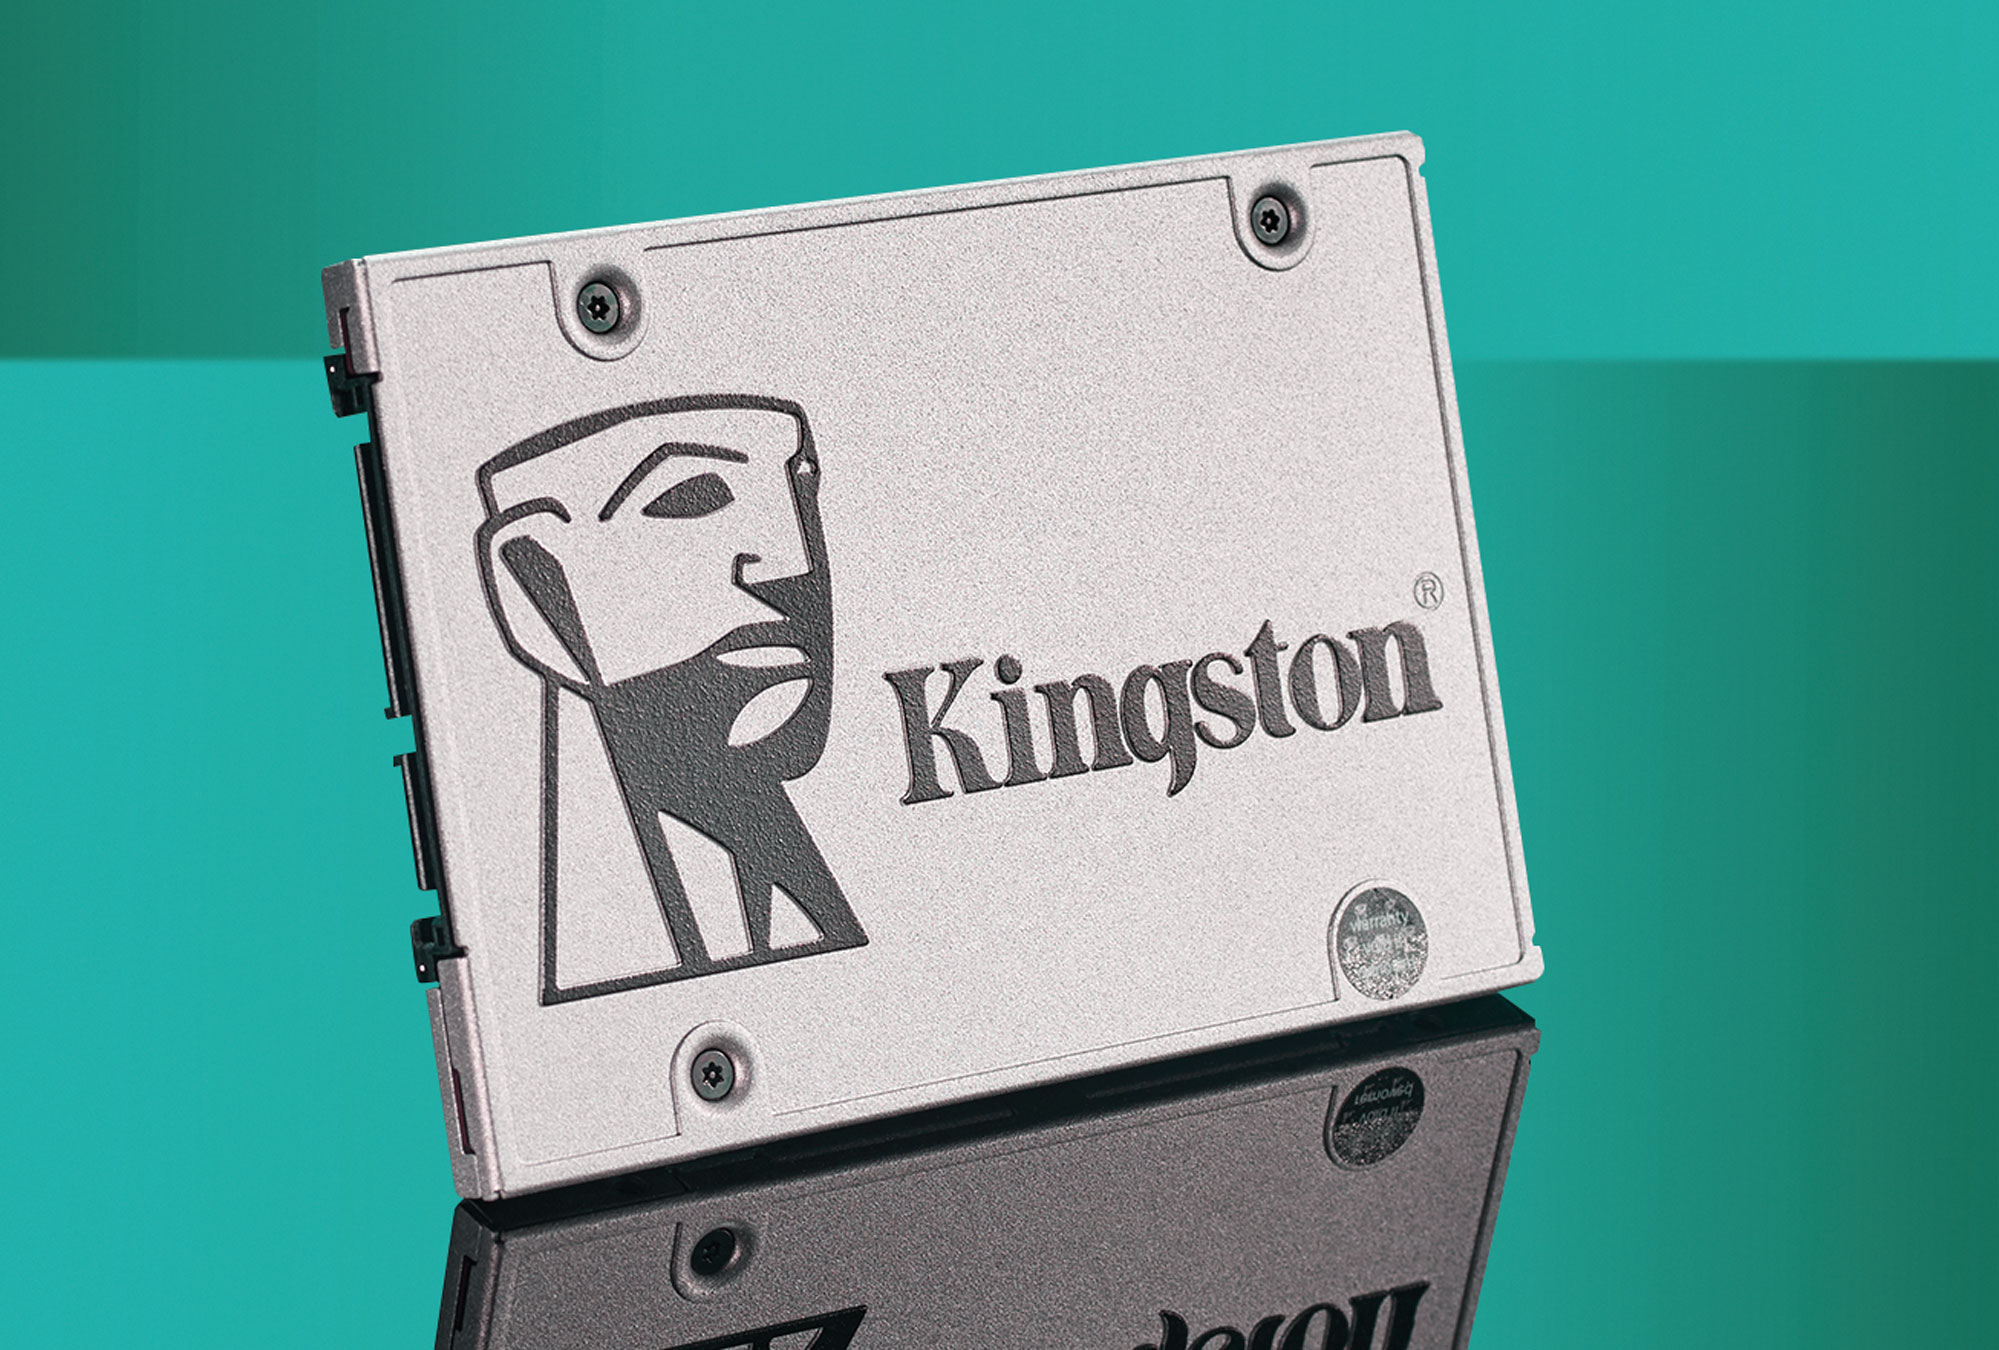 Kingston SSDNow UV400 480 GB [TEST]: Ikke godt nok til prisen